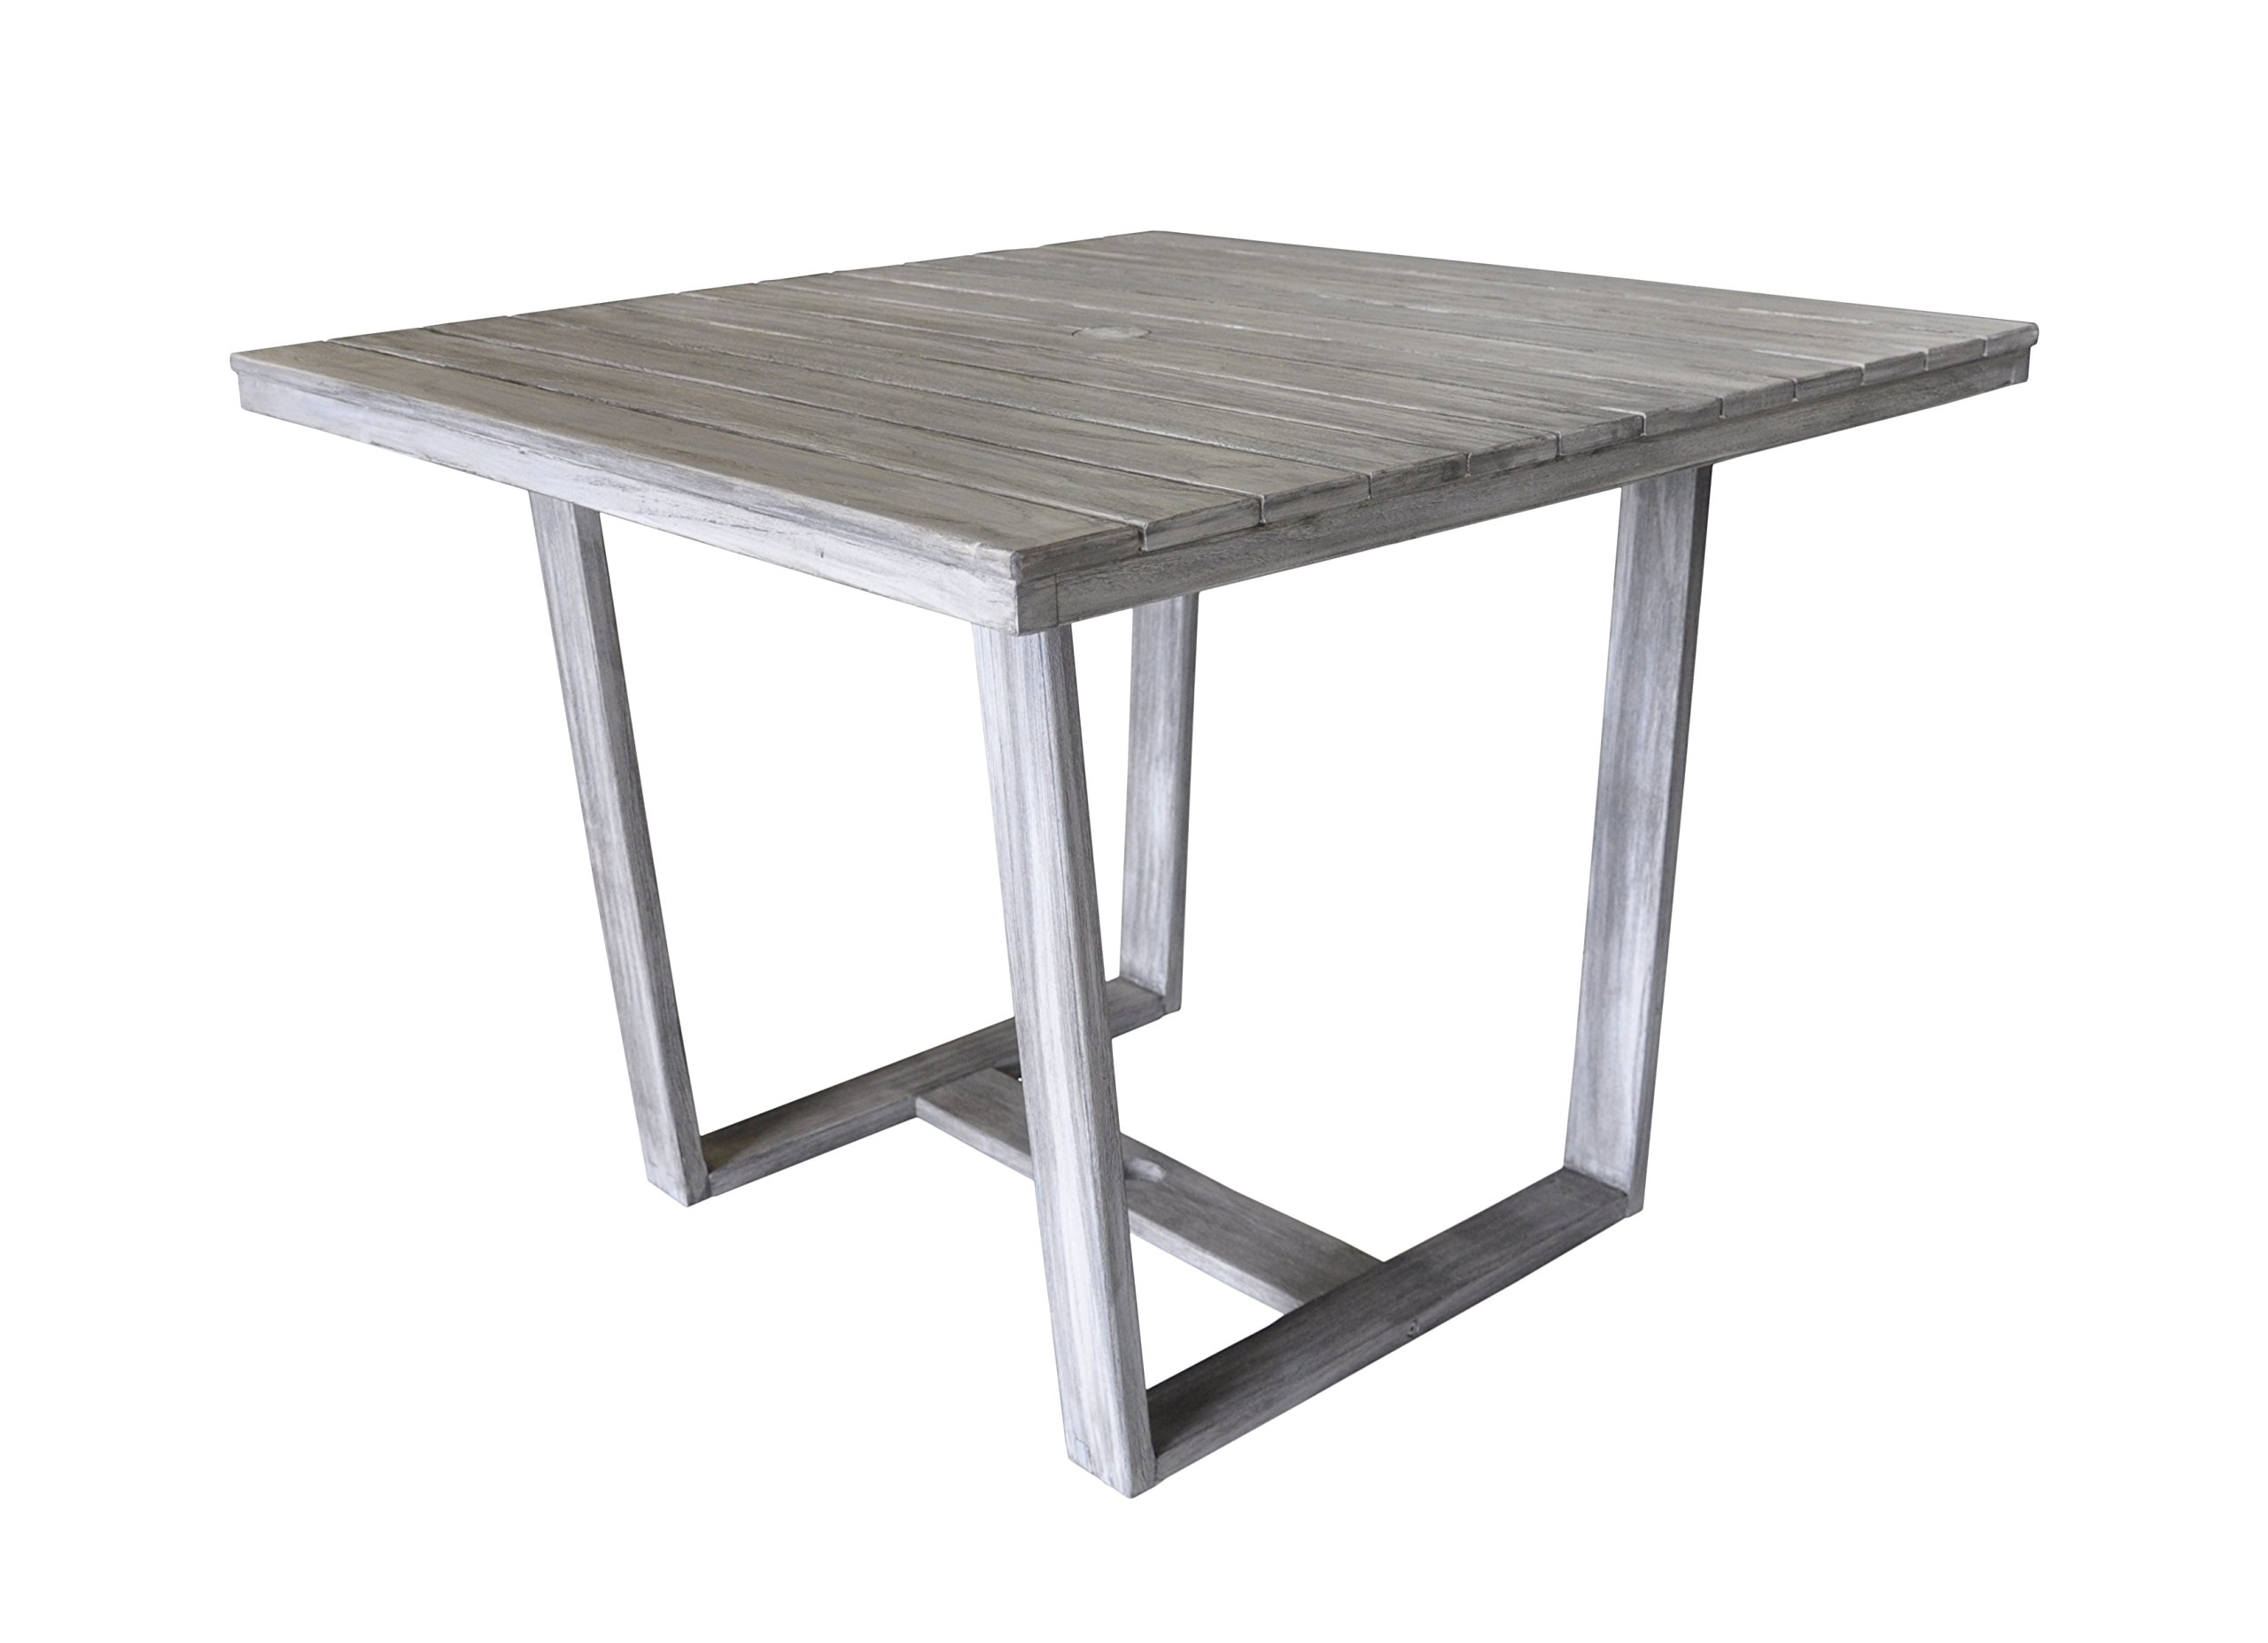 Bayside Square To Round Dining Table: Courtyard Casual Driftwood Gray Teak Contemporary Bay Side